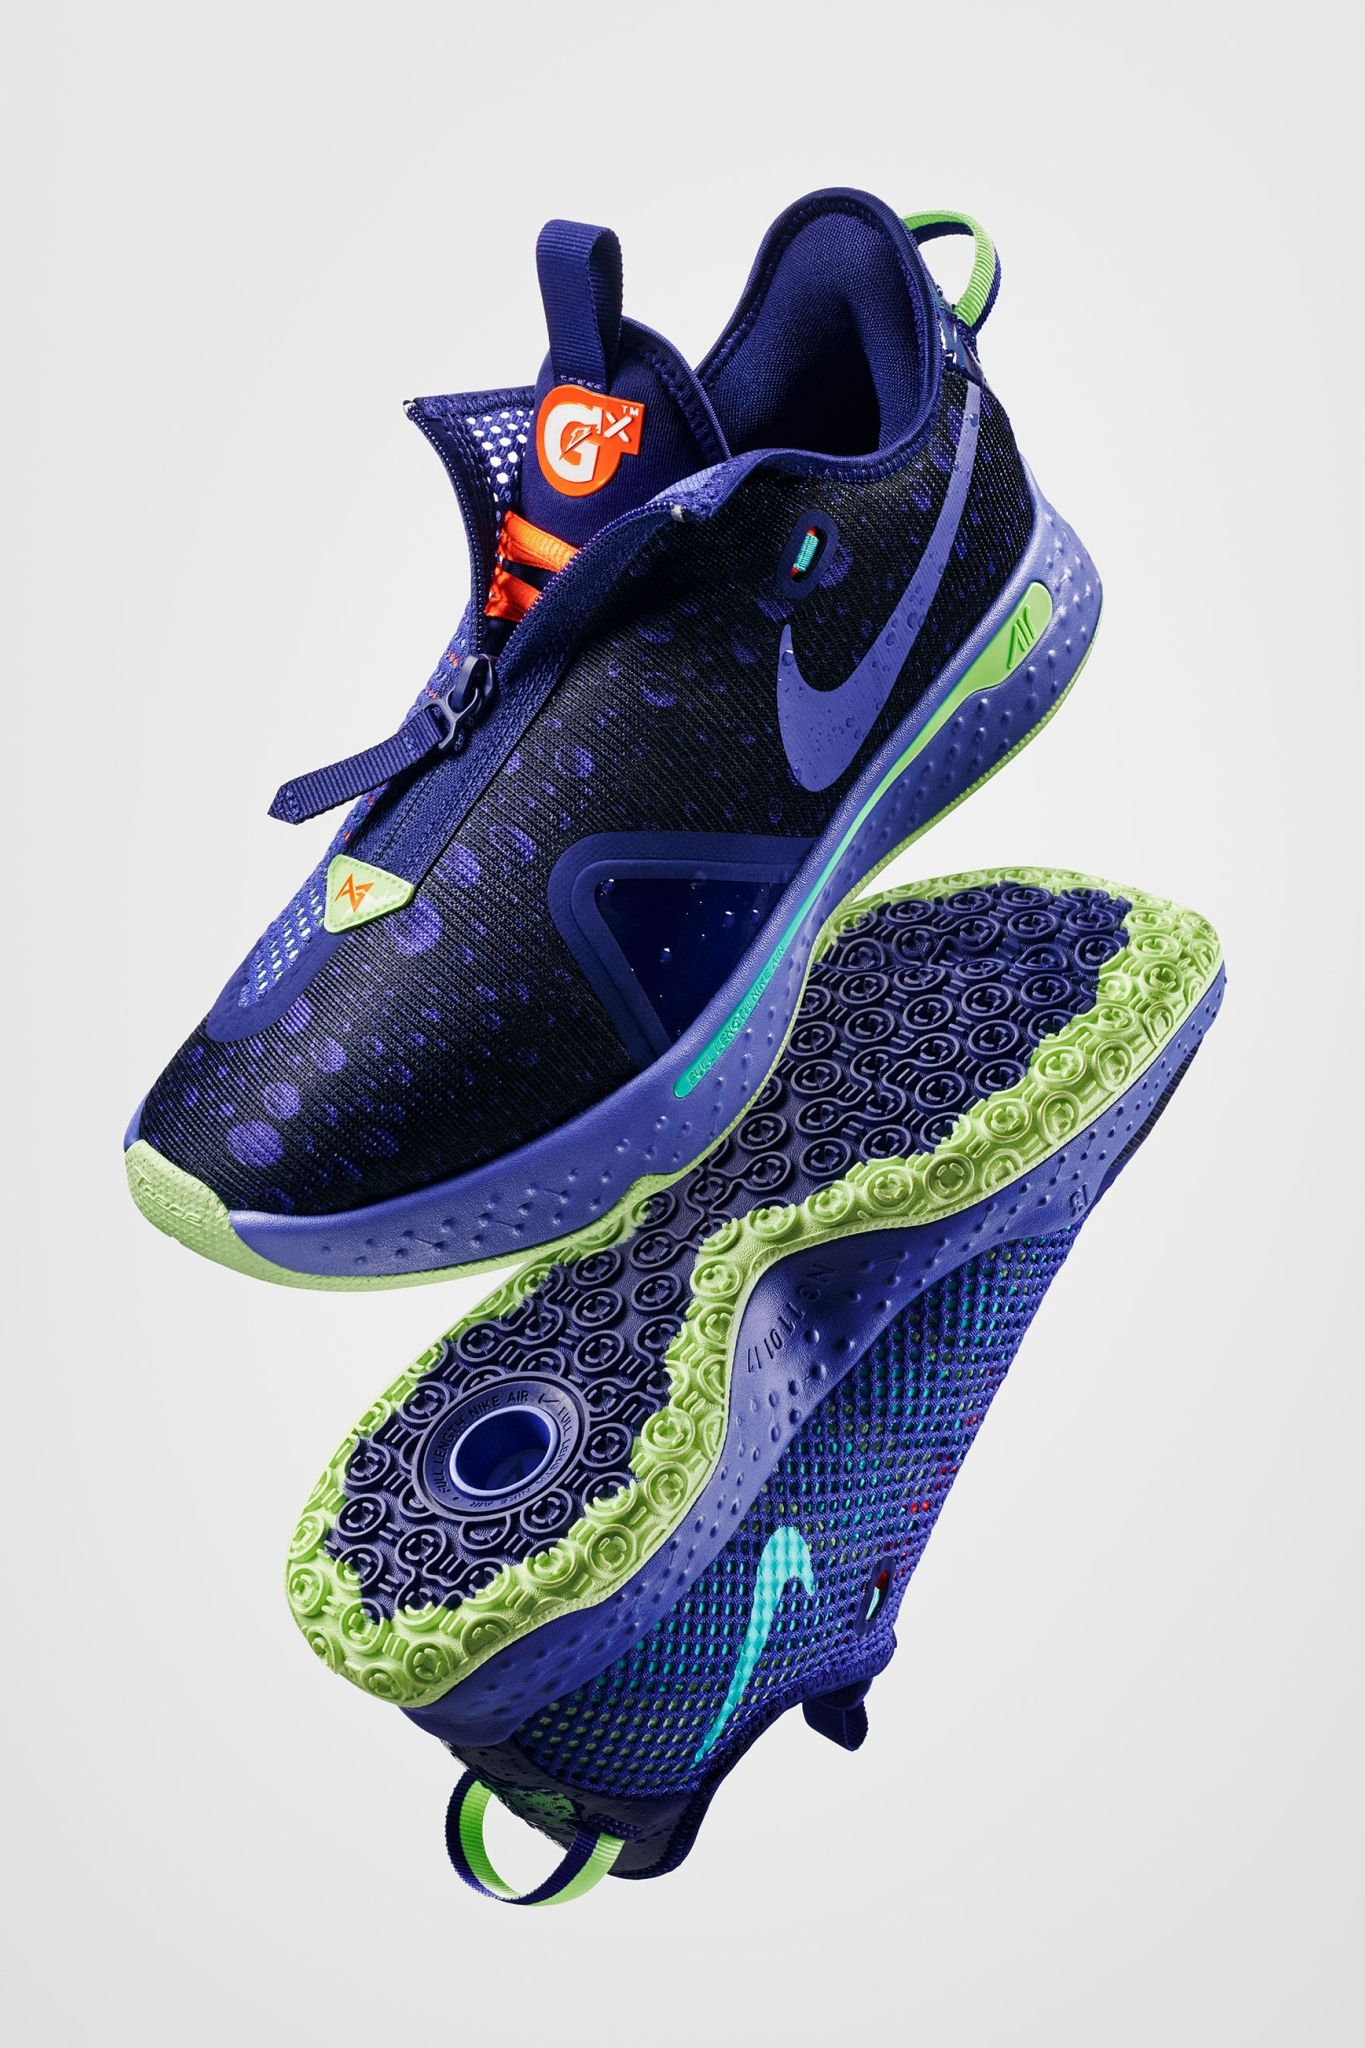 Gatorade Is Collaborating With Nike On A New Pg 4 Colorway Sneakers Nike Sneakers Nike